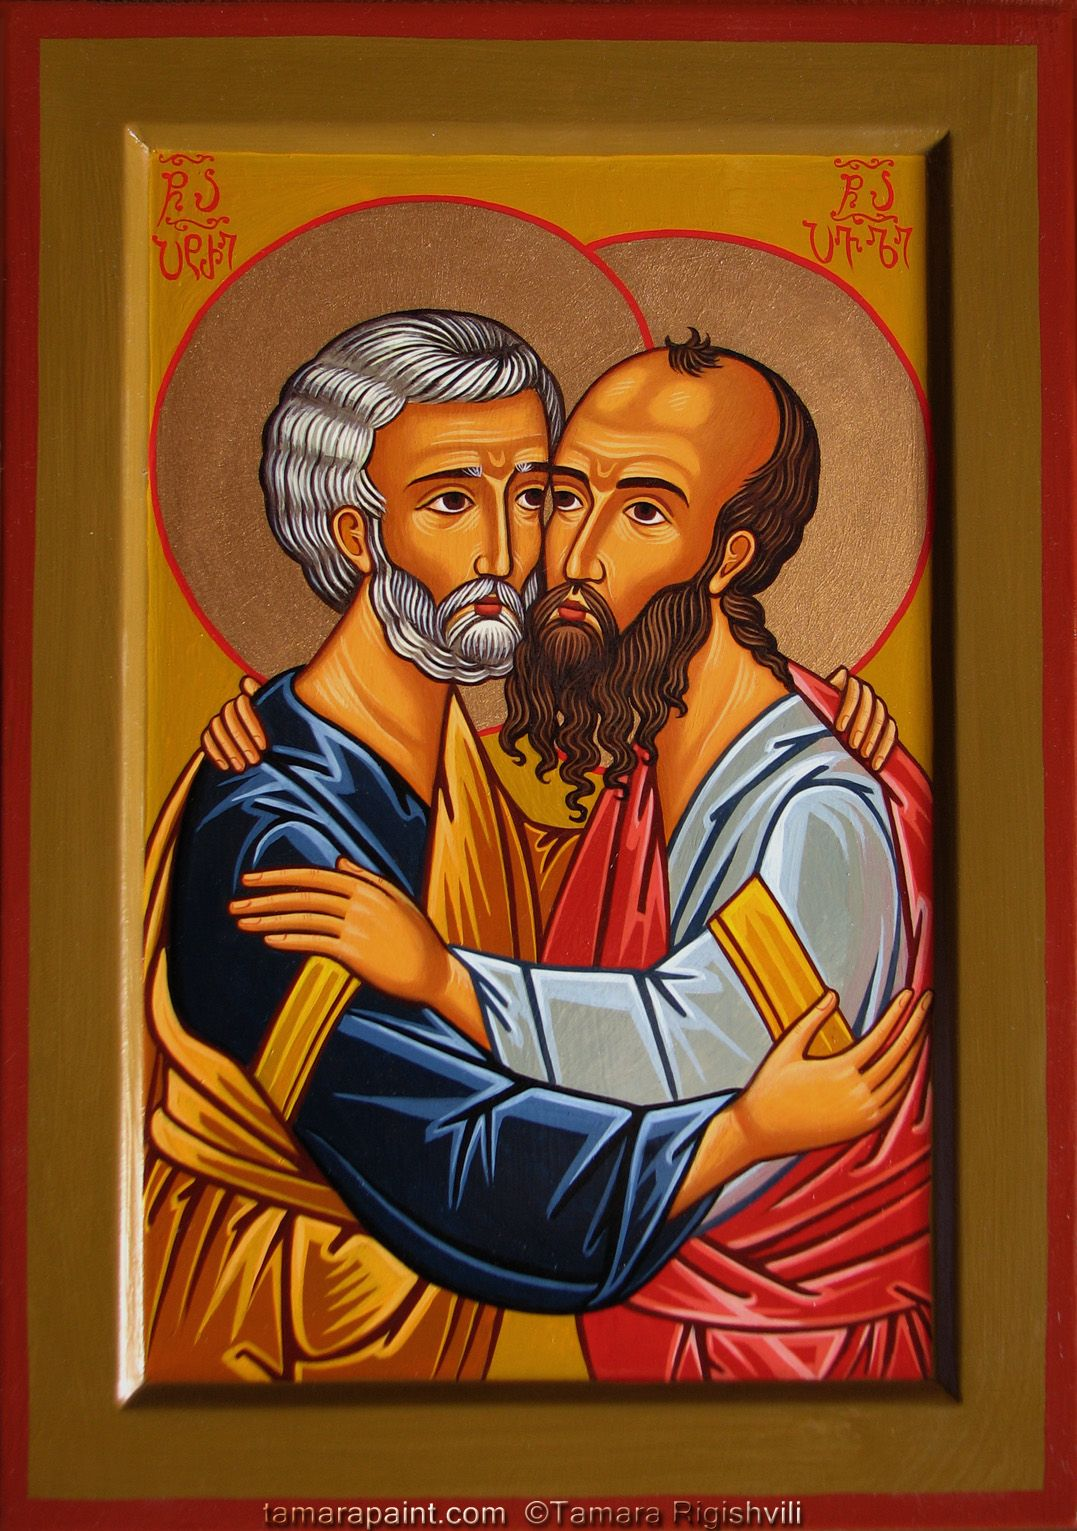 Saints Peter and Paul dans immagini sacre peterpaul